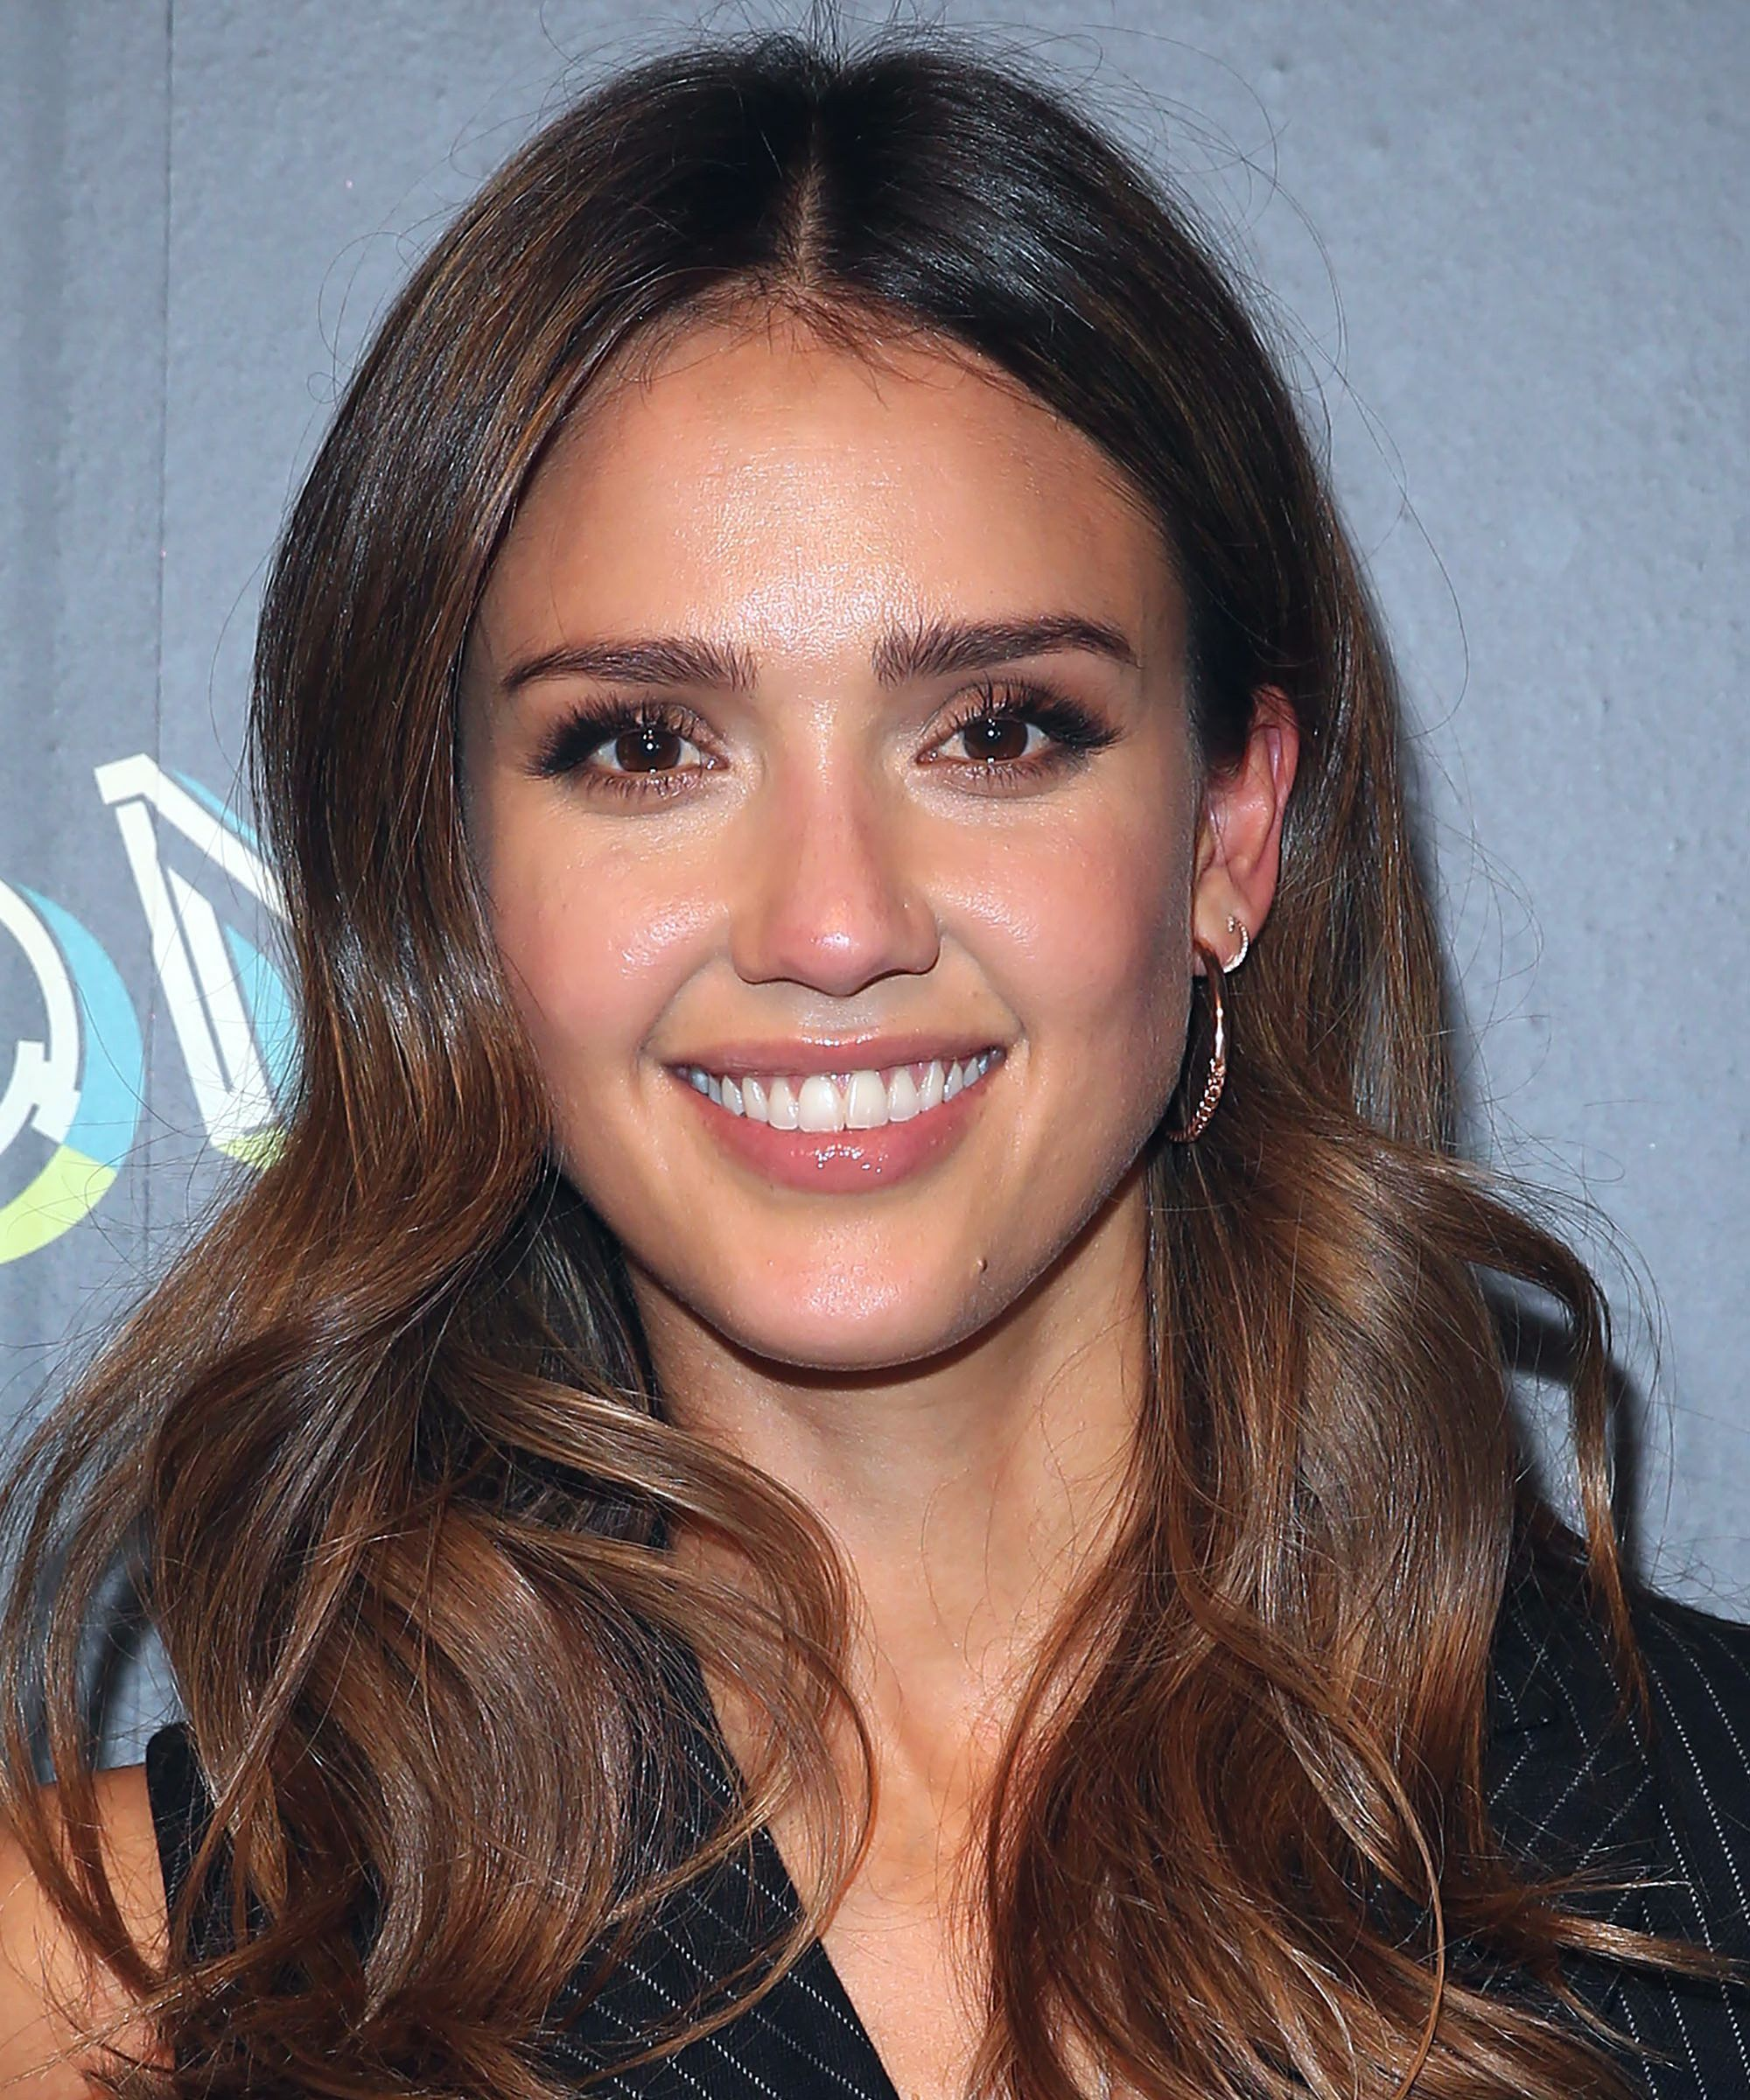 Who Is The Famous Ex Jessica Alba Got A Breakup Tattoo For